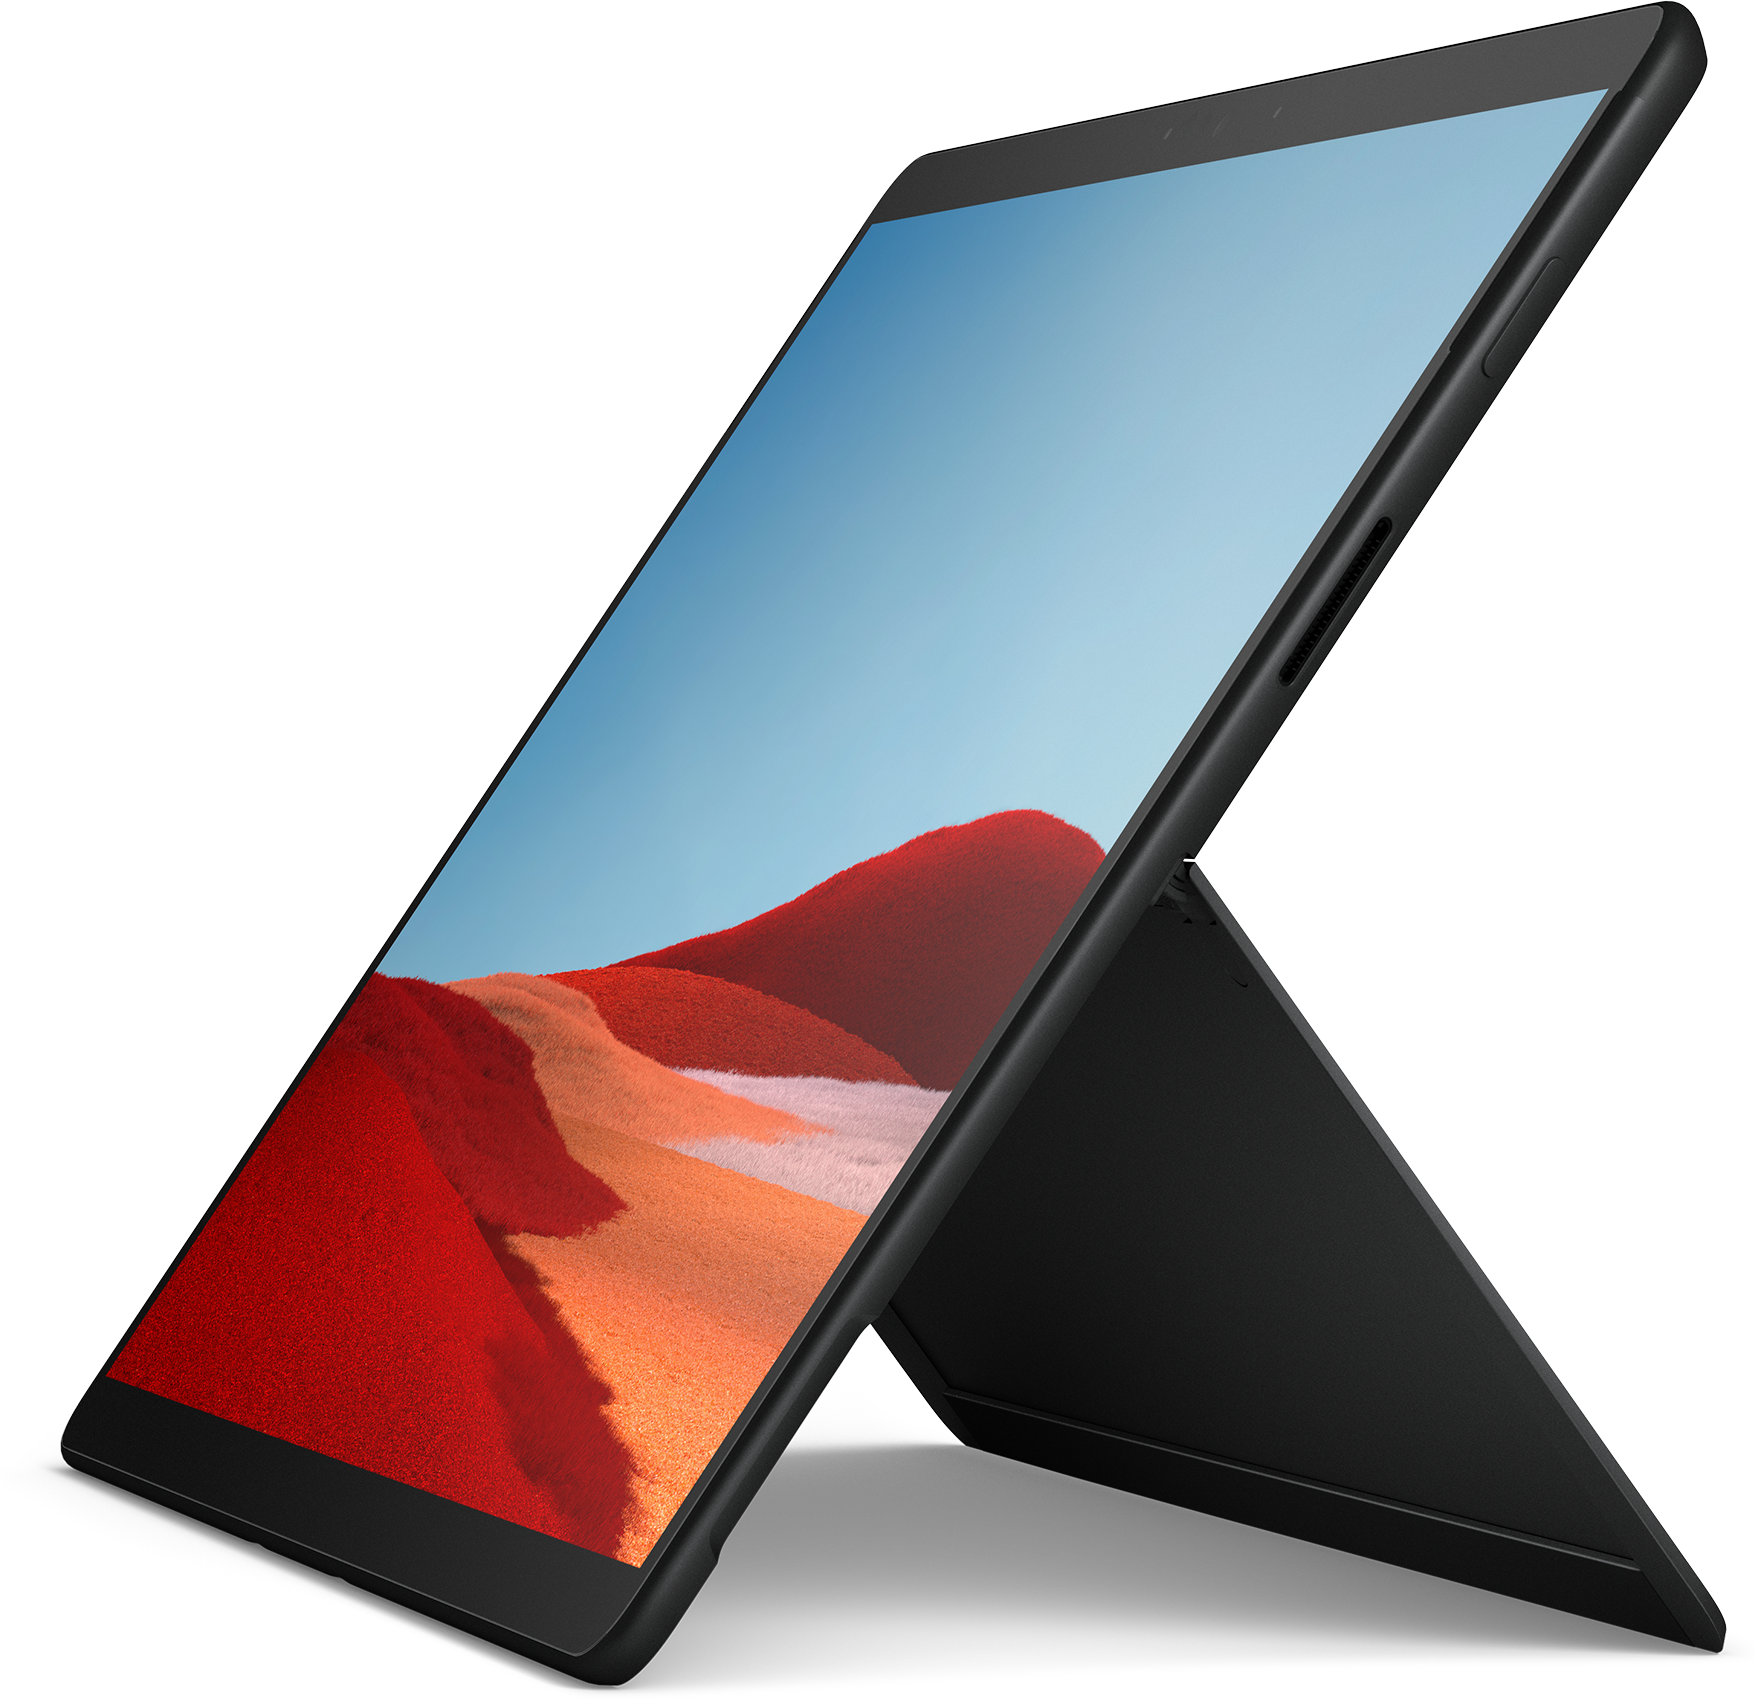 RE3onLg?ver=a81b - Surface Pro X for Business - Black, 16GB, 256GB